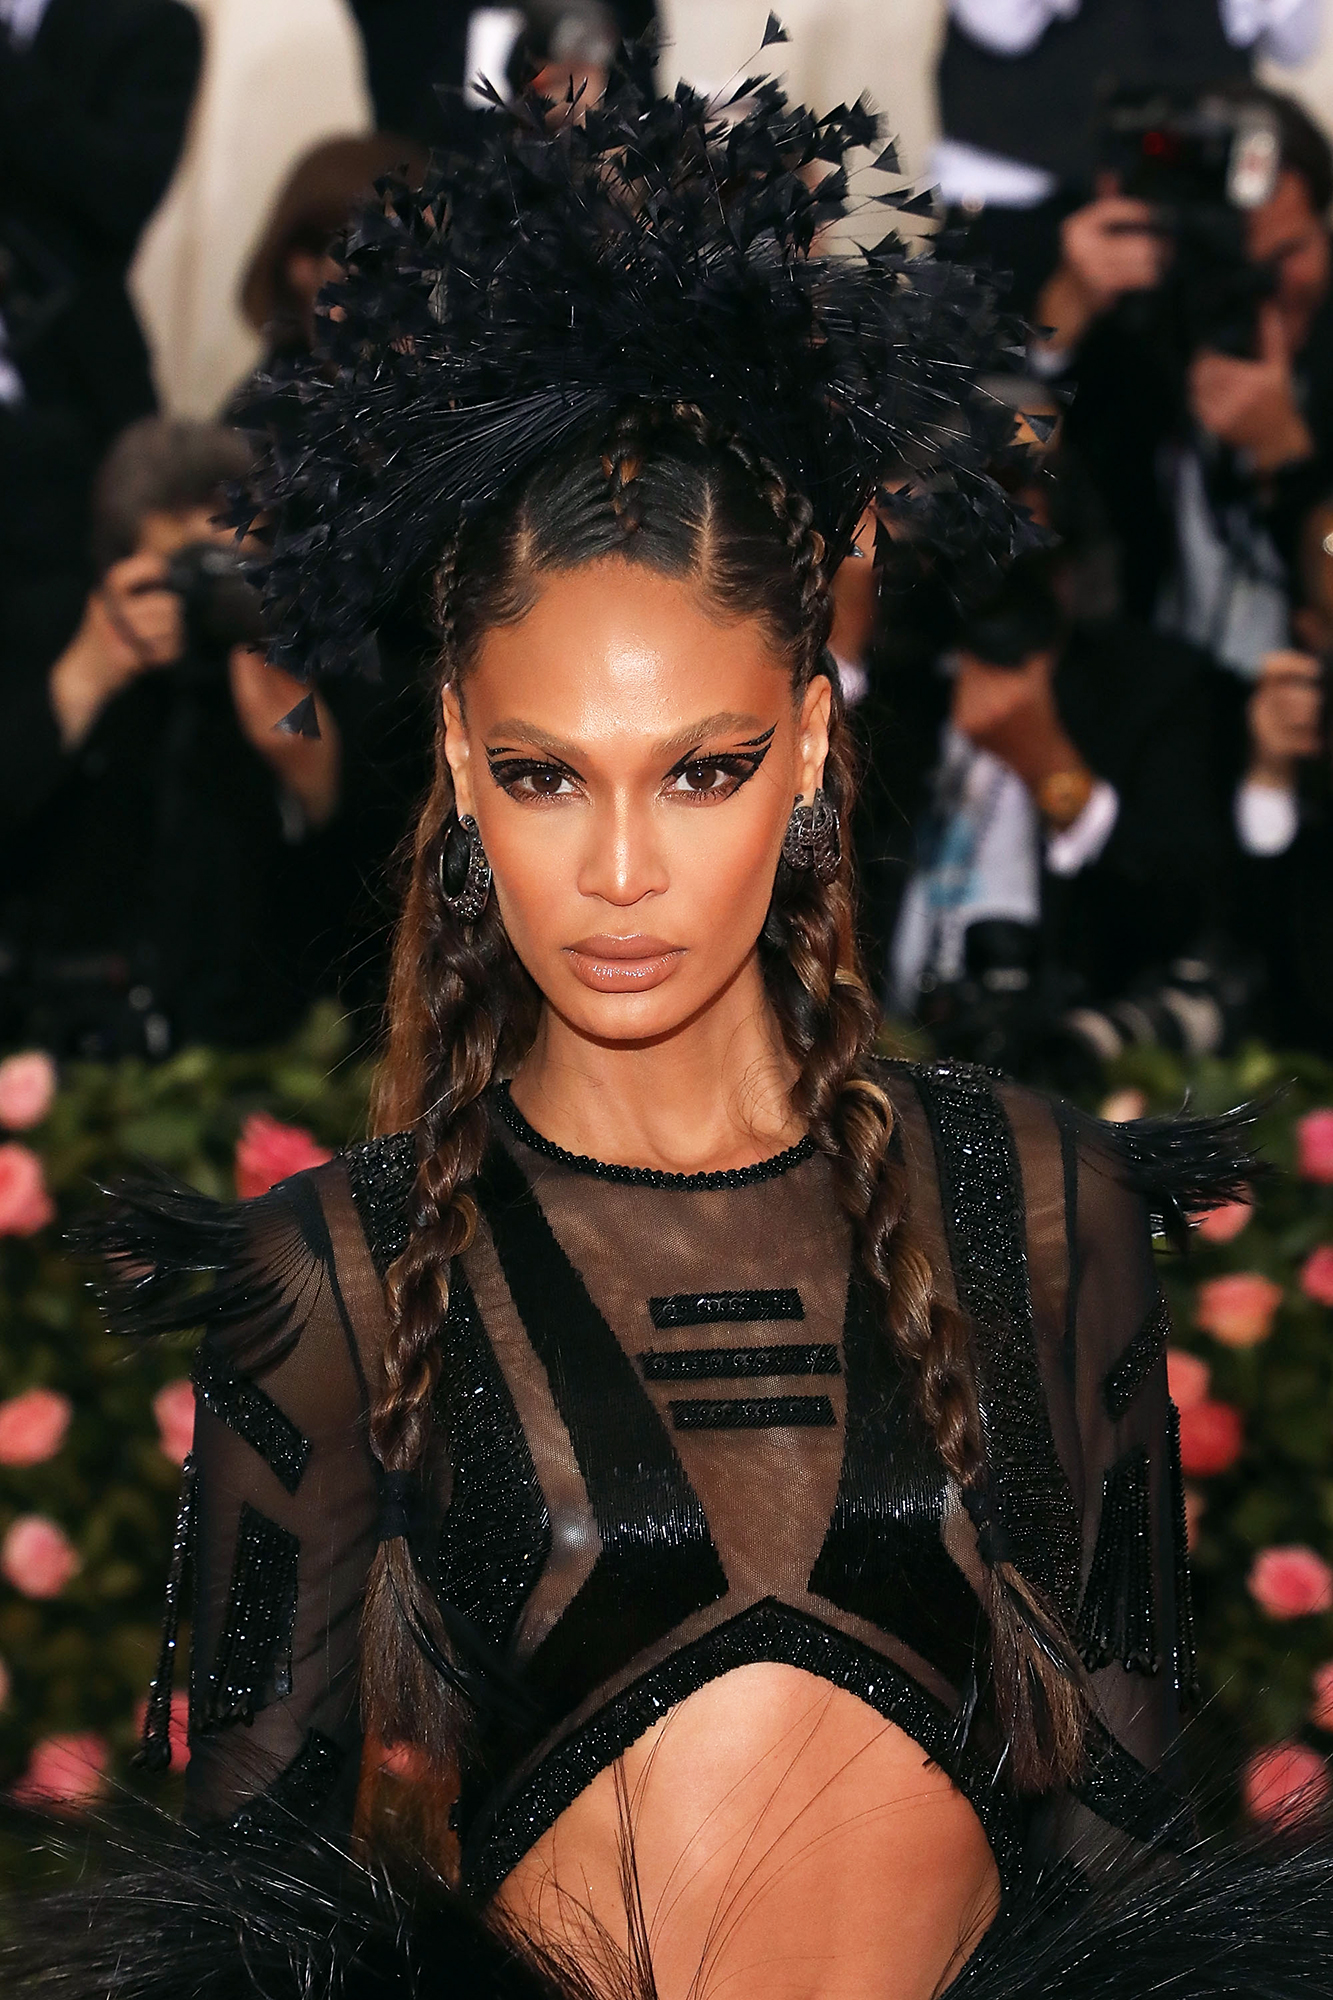 """Joan Small's Makeup Pro Patrick Ta Talks Met Gala - Joan Smalls attends the 2019 Met Gala celebrating """"Camp: Notes on Fashion"""" at The Metropolitan Museum of Art on May 6, 2019 in New York City."""